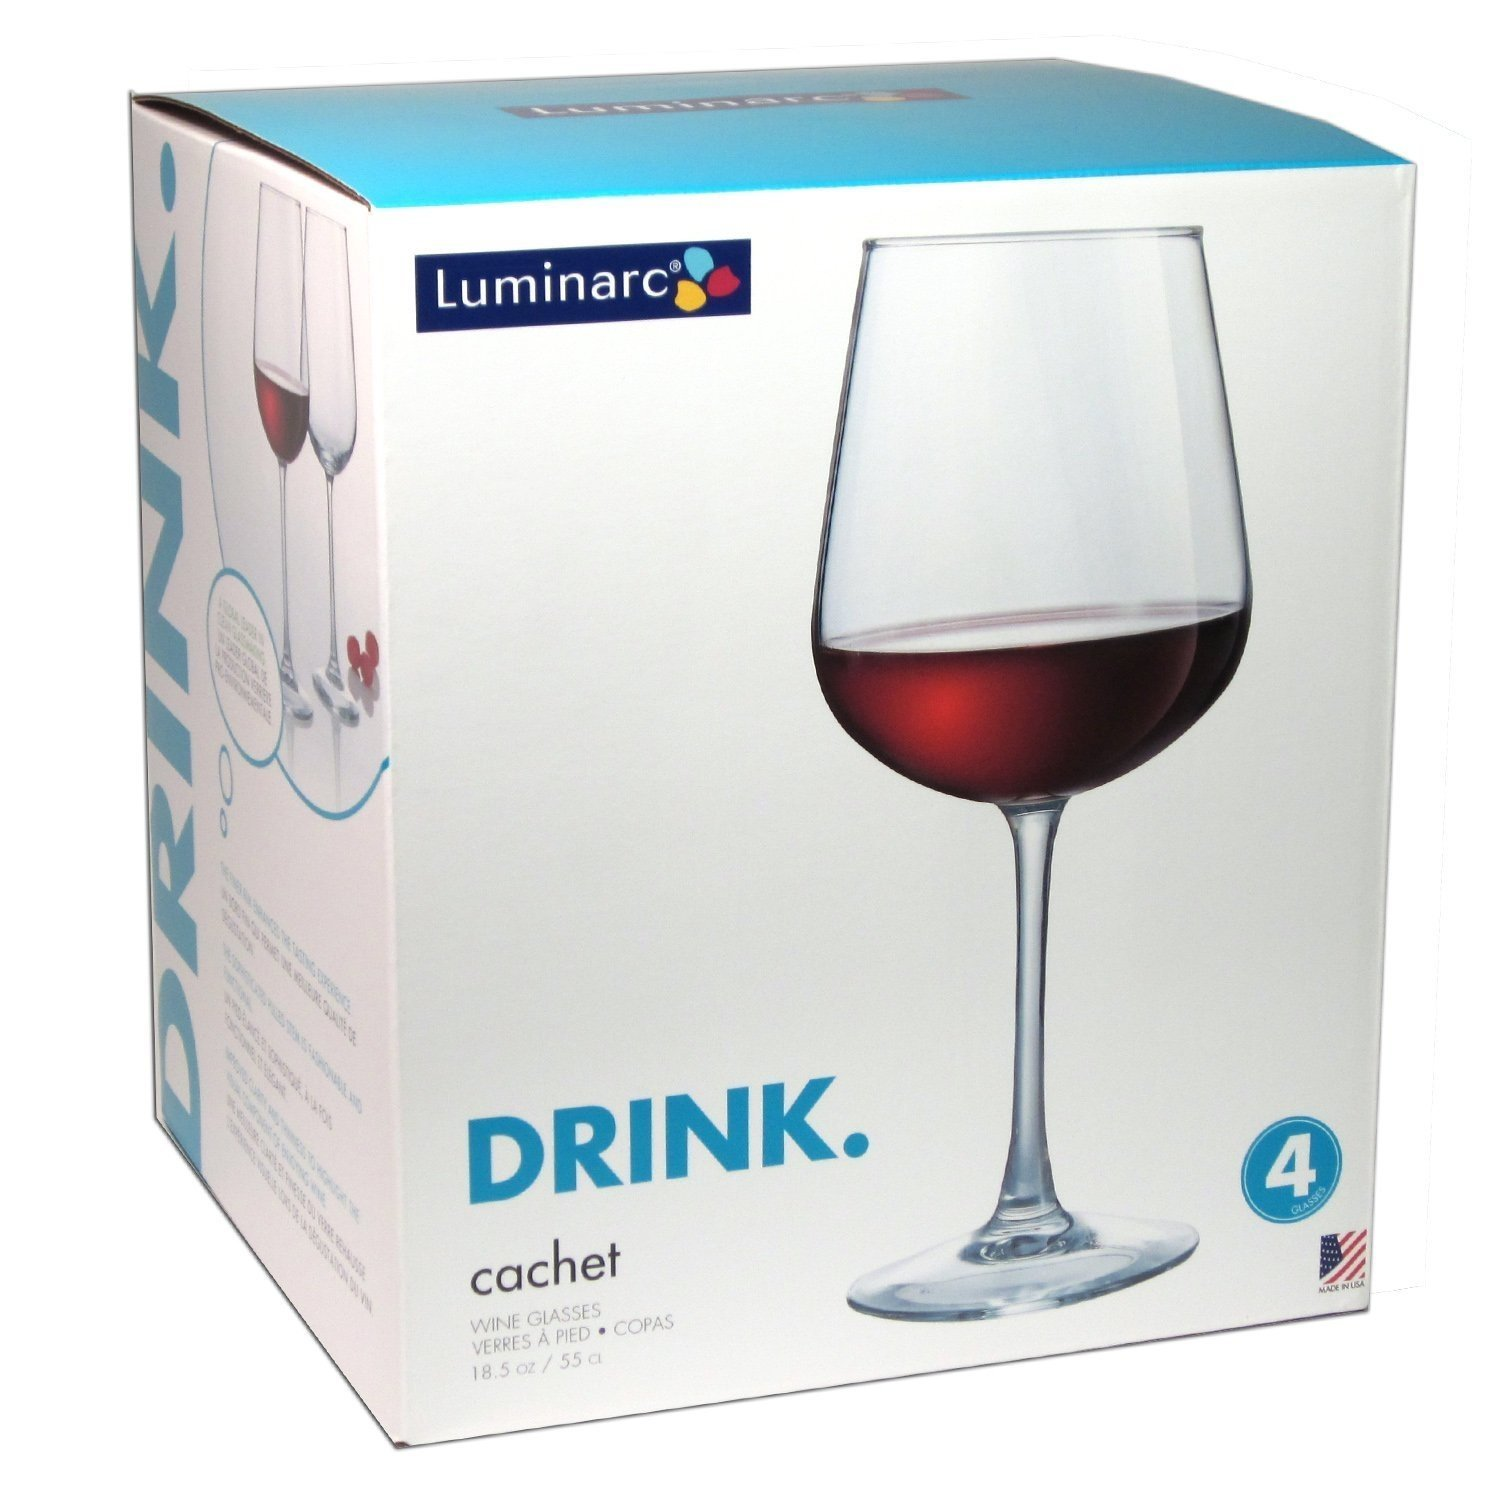 Luminarc wine glasses